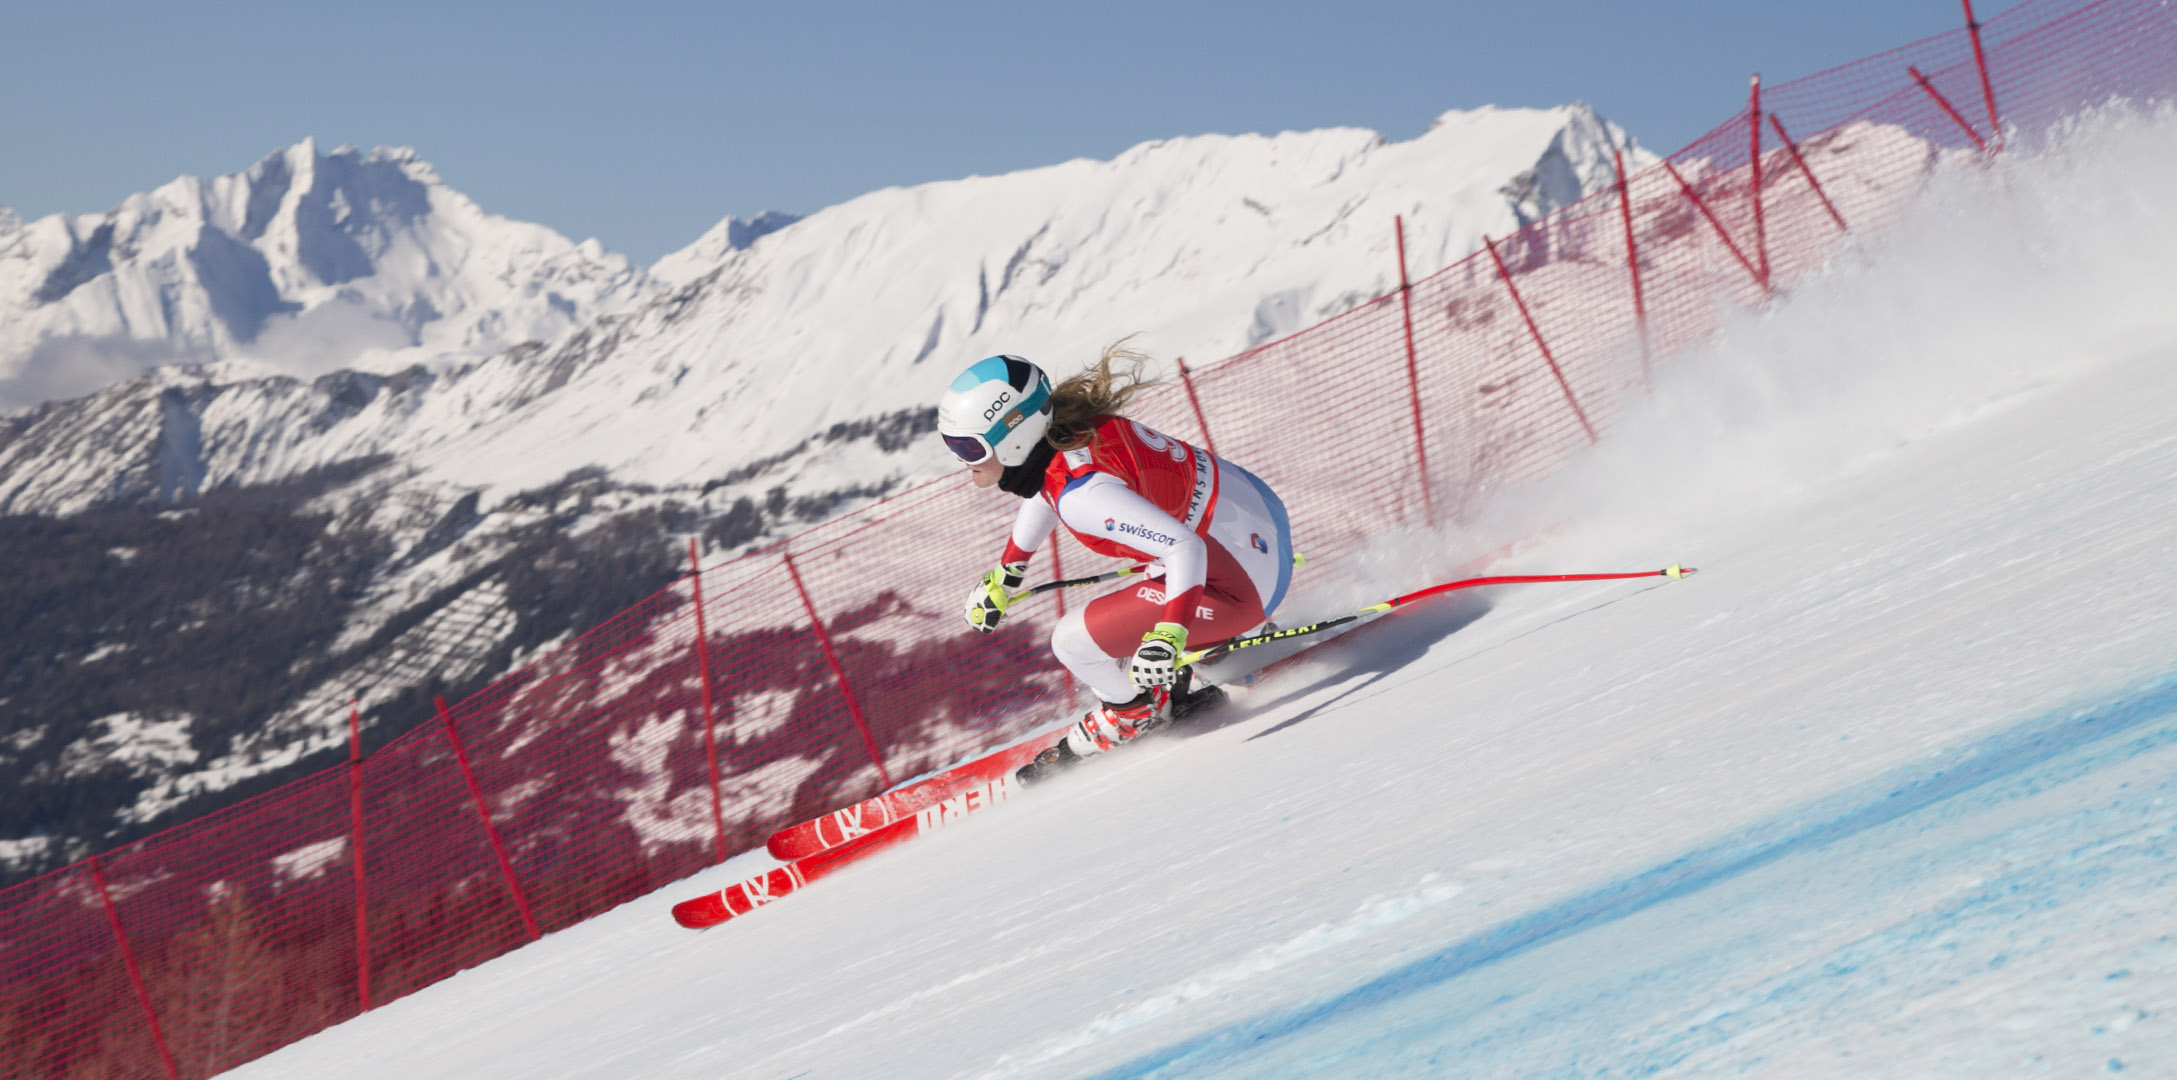 FINALES COUPE D'EUROPE FIS DE SKI ALPIN 2018 2